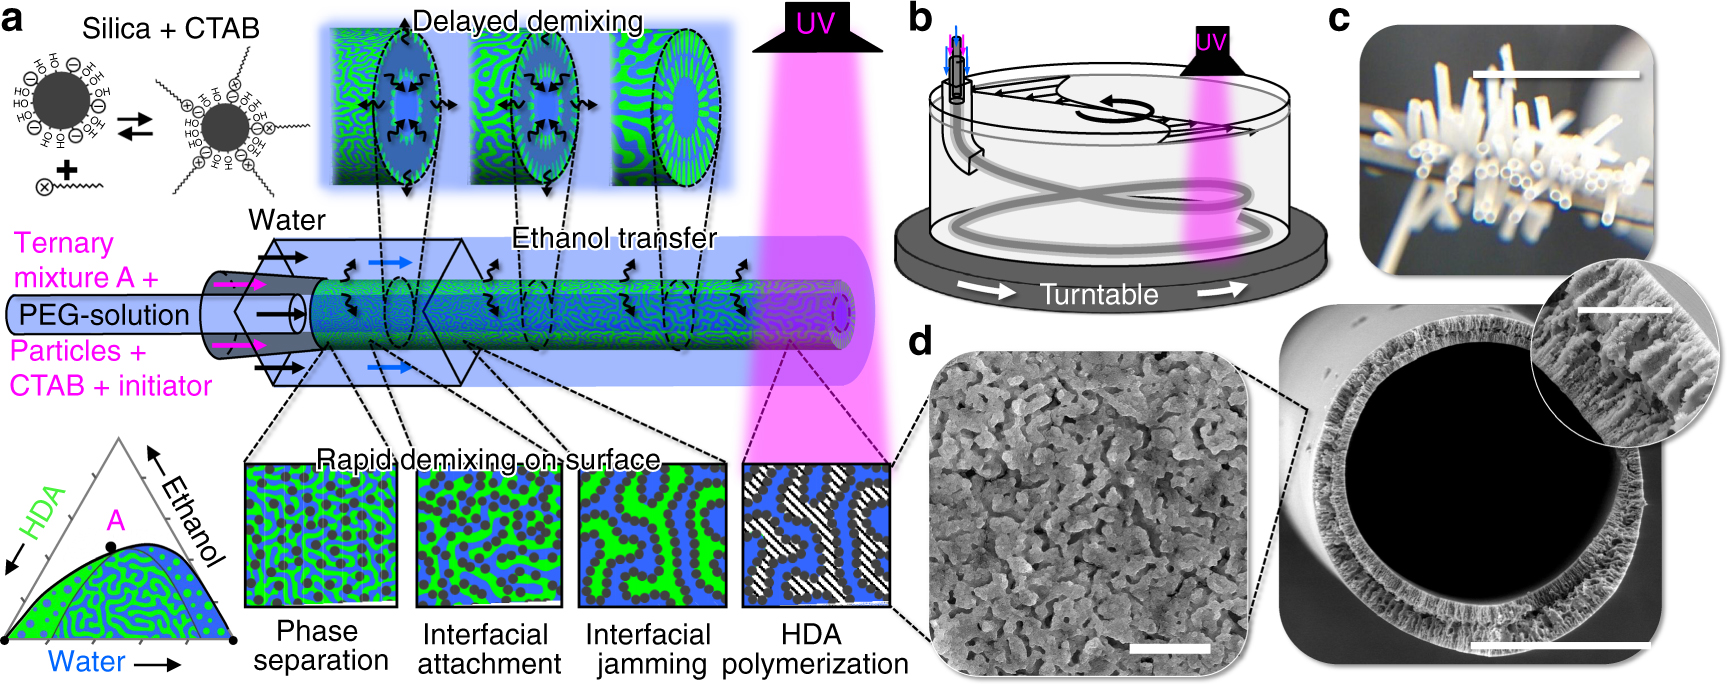 Multifunctional nanoposite hollow fiber membranes by